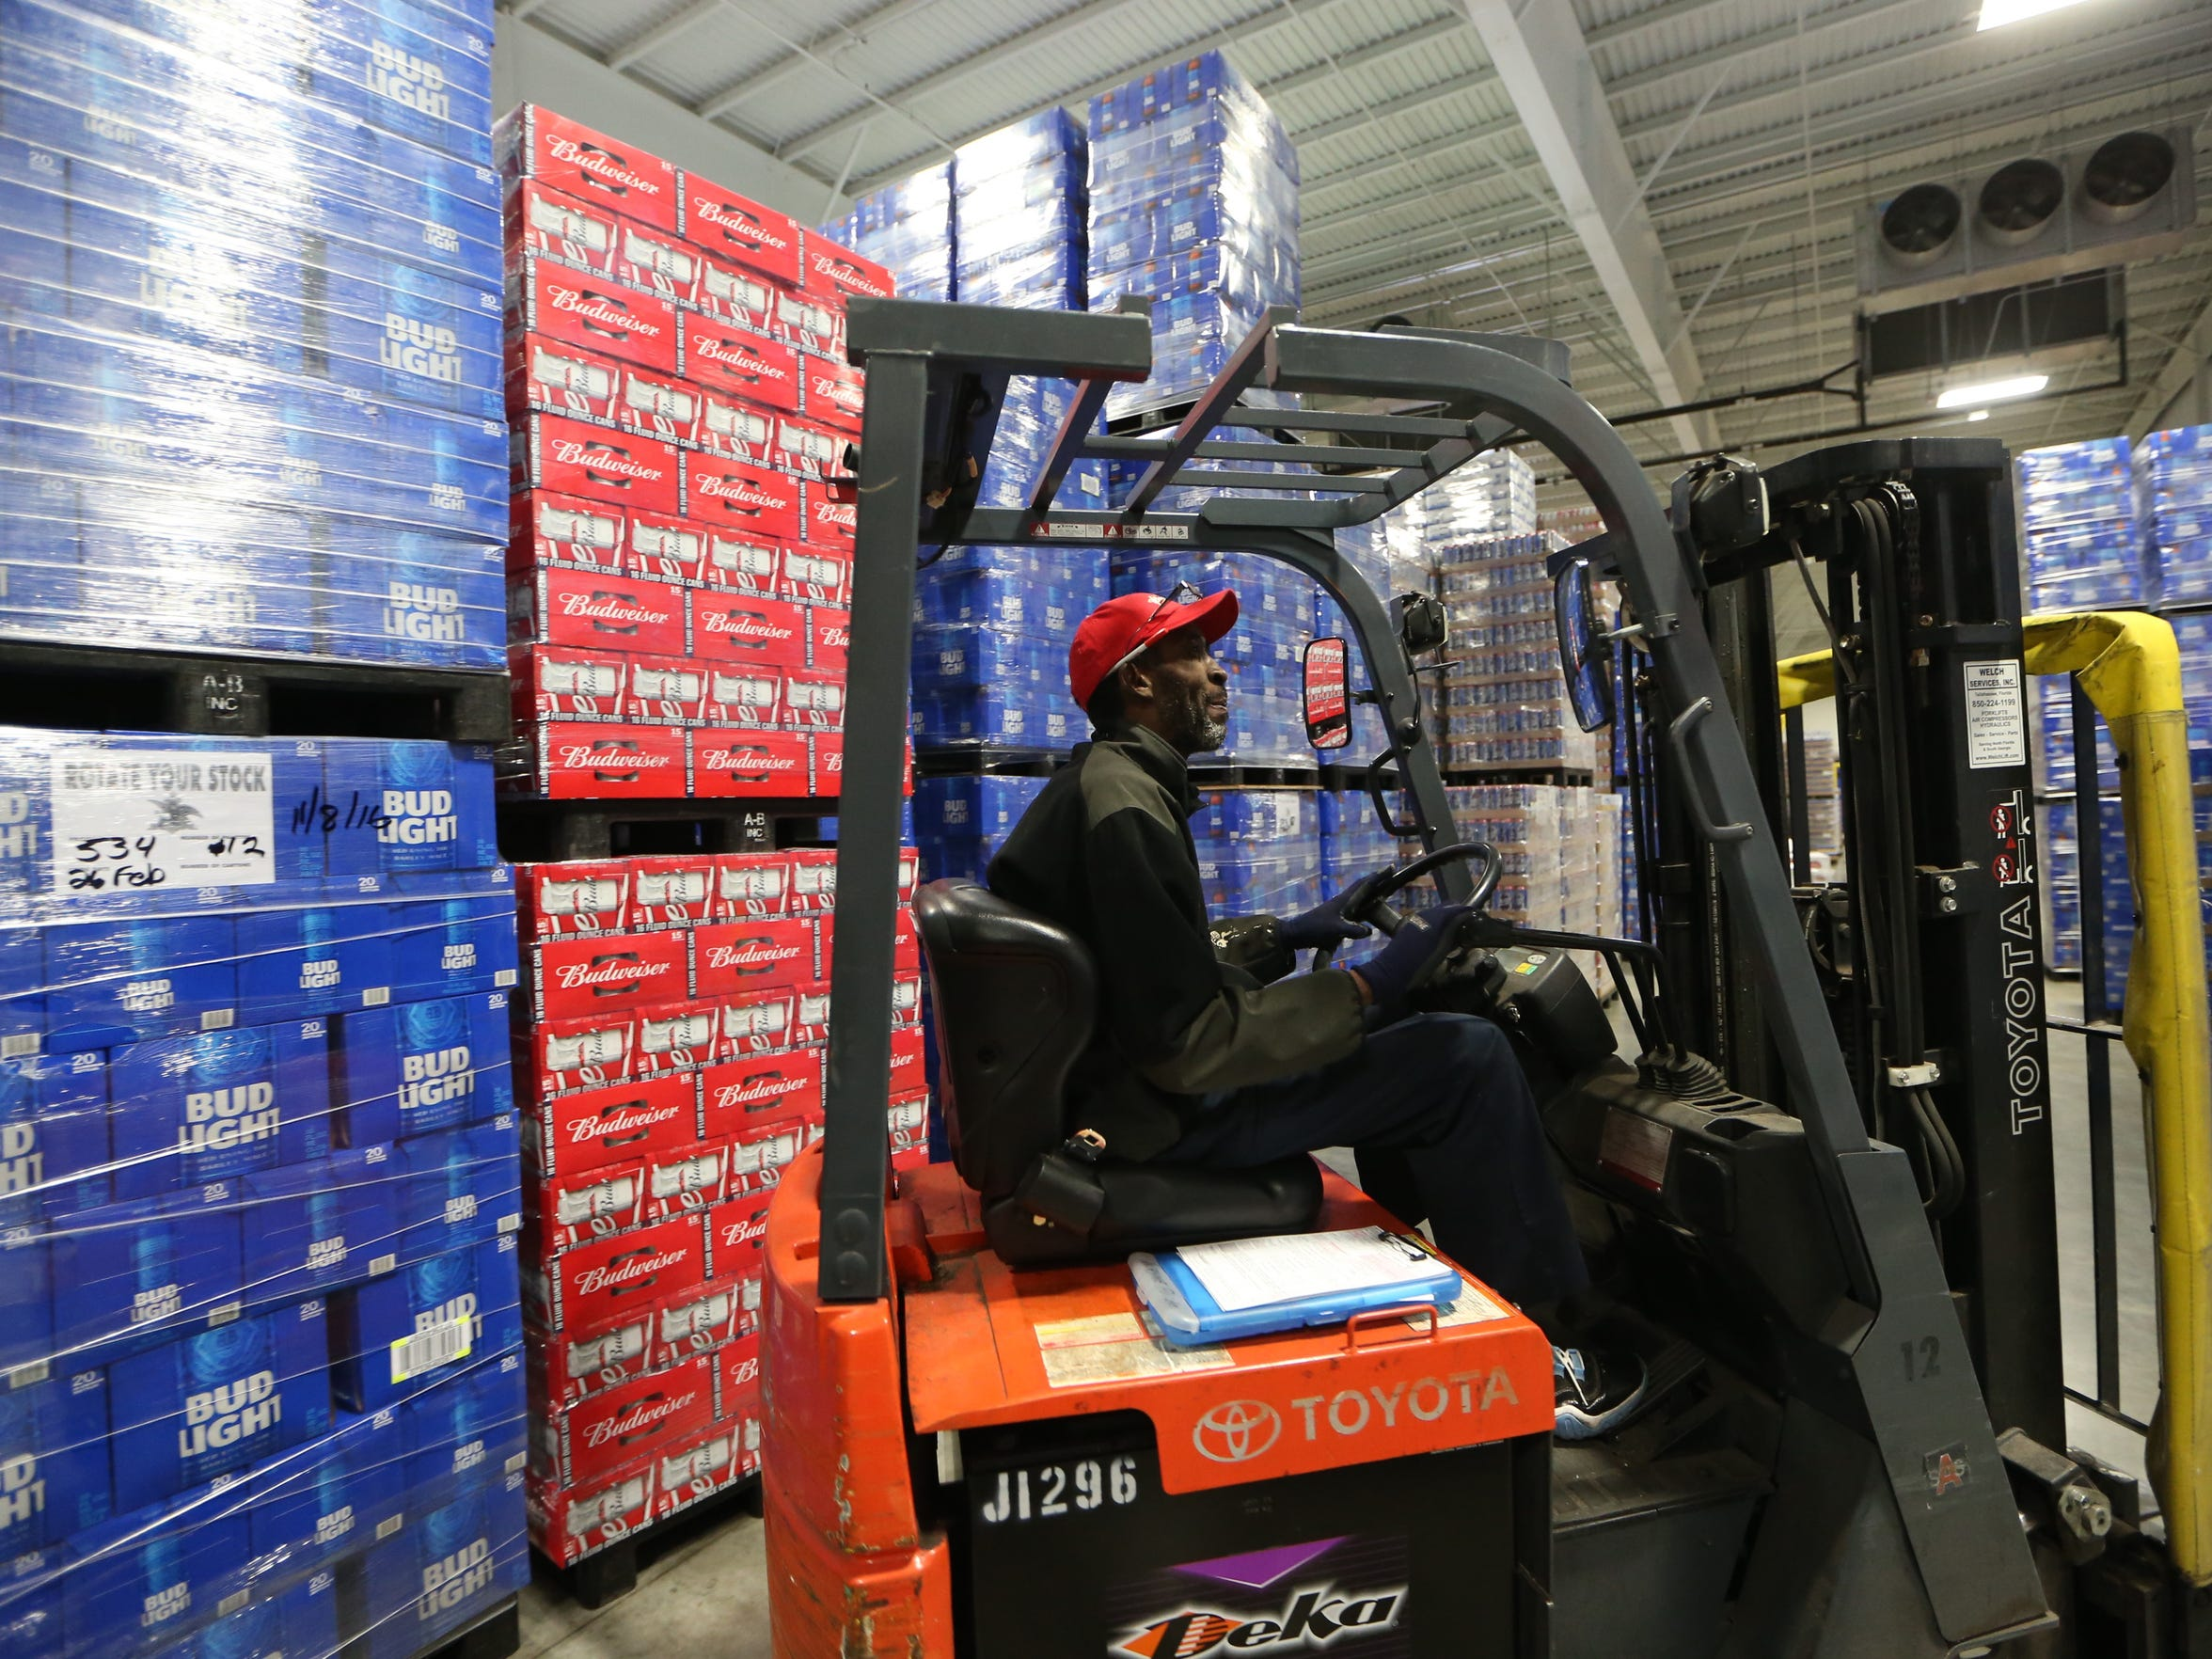 Workers move large palates of traditional Anheuser Busch